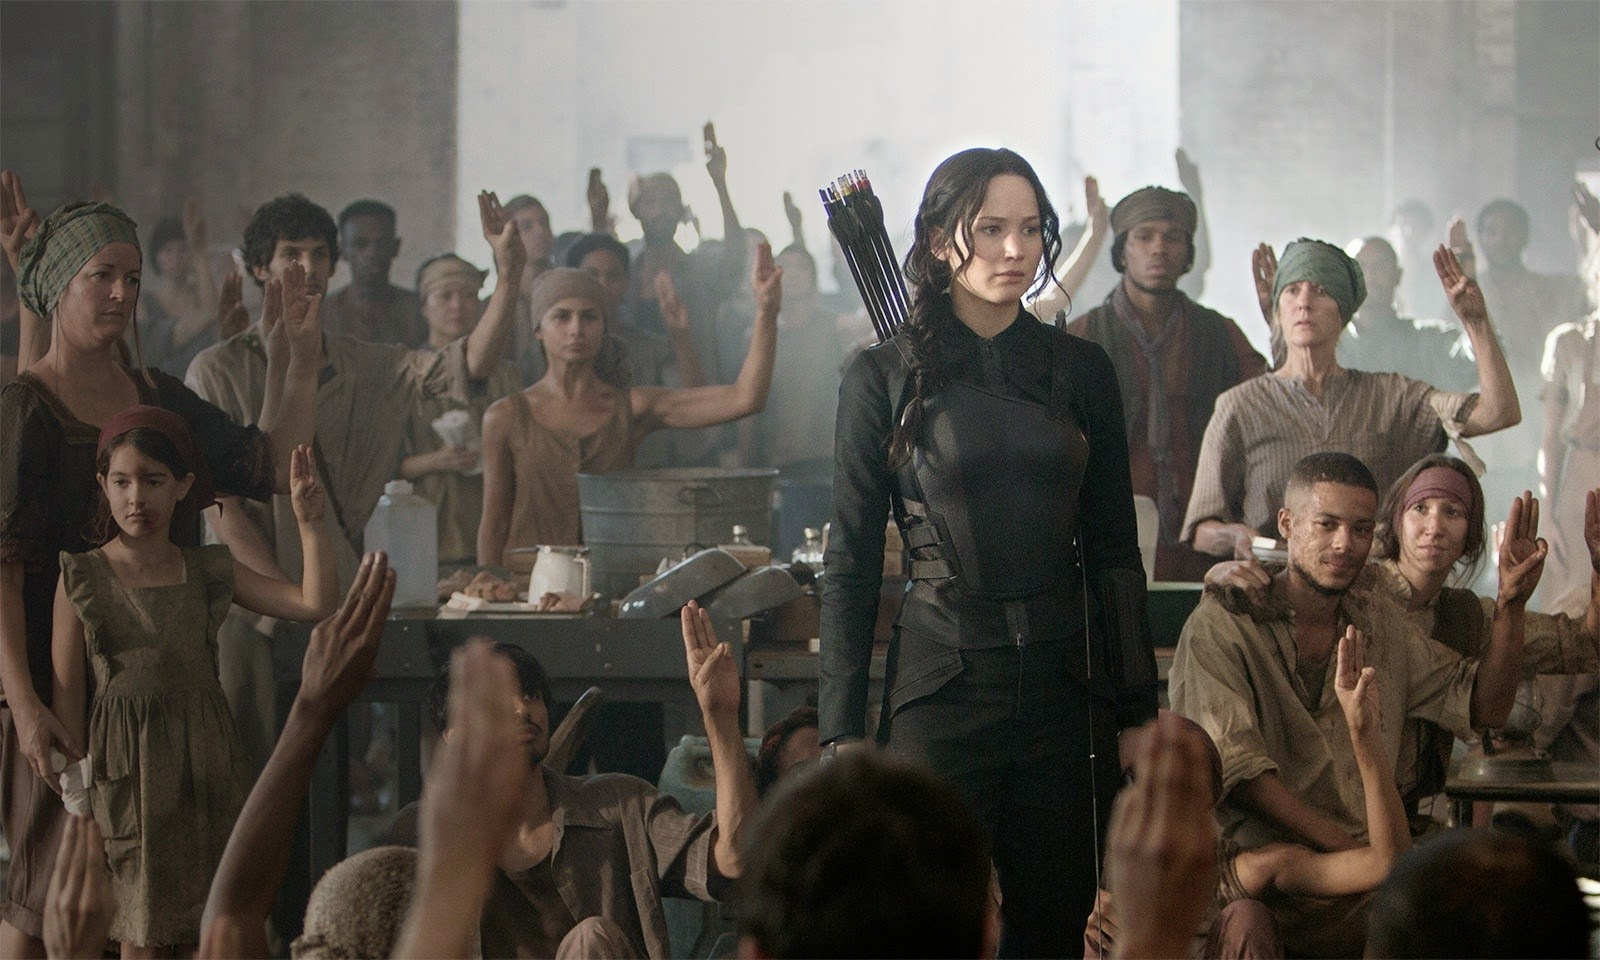 hg-mockingjay-part1-img06 hospital outfit.jpg